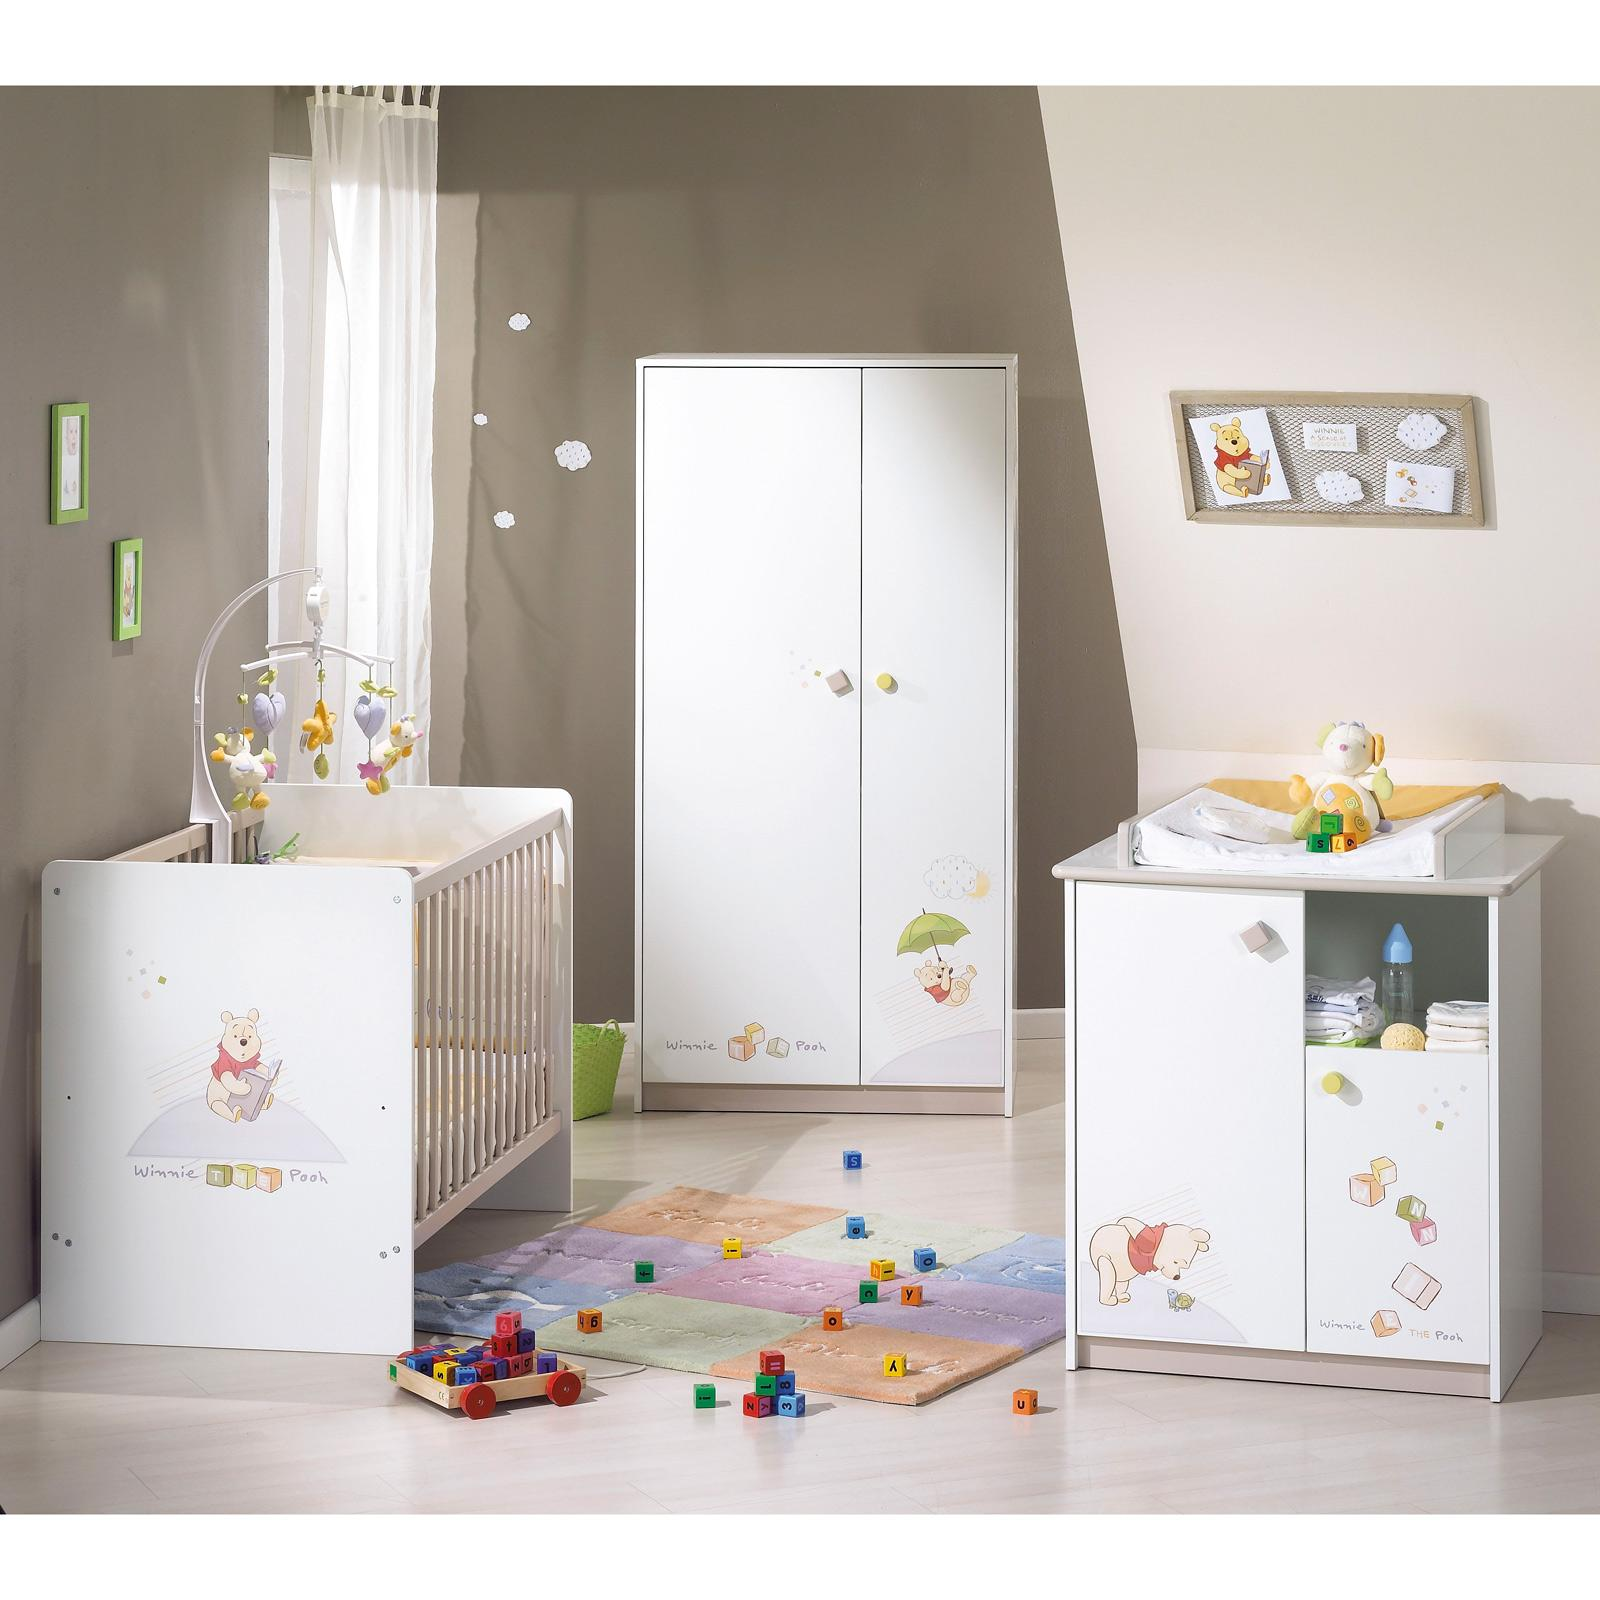 Decoration de chambre bebe winnie l ourson - Decoration chambre bebe fille pas cher ...